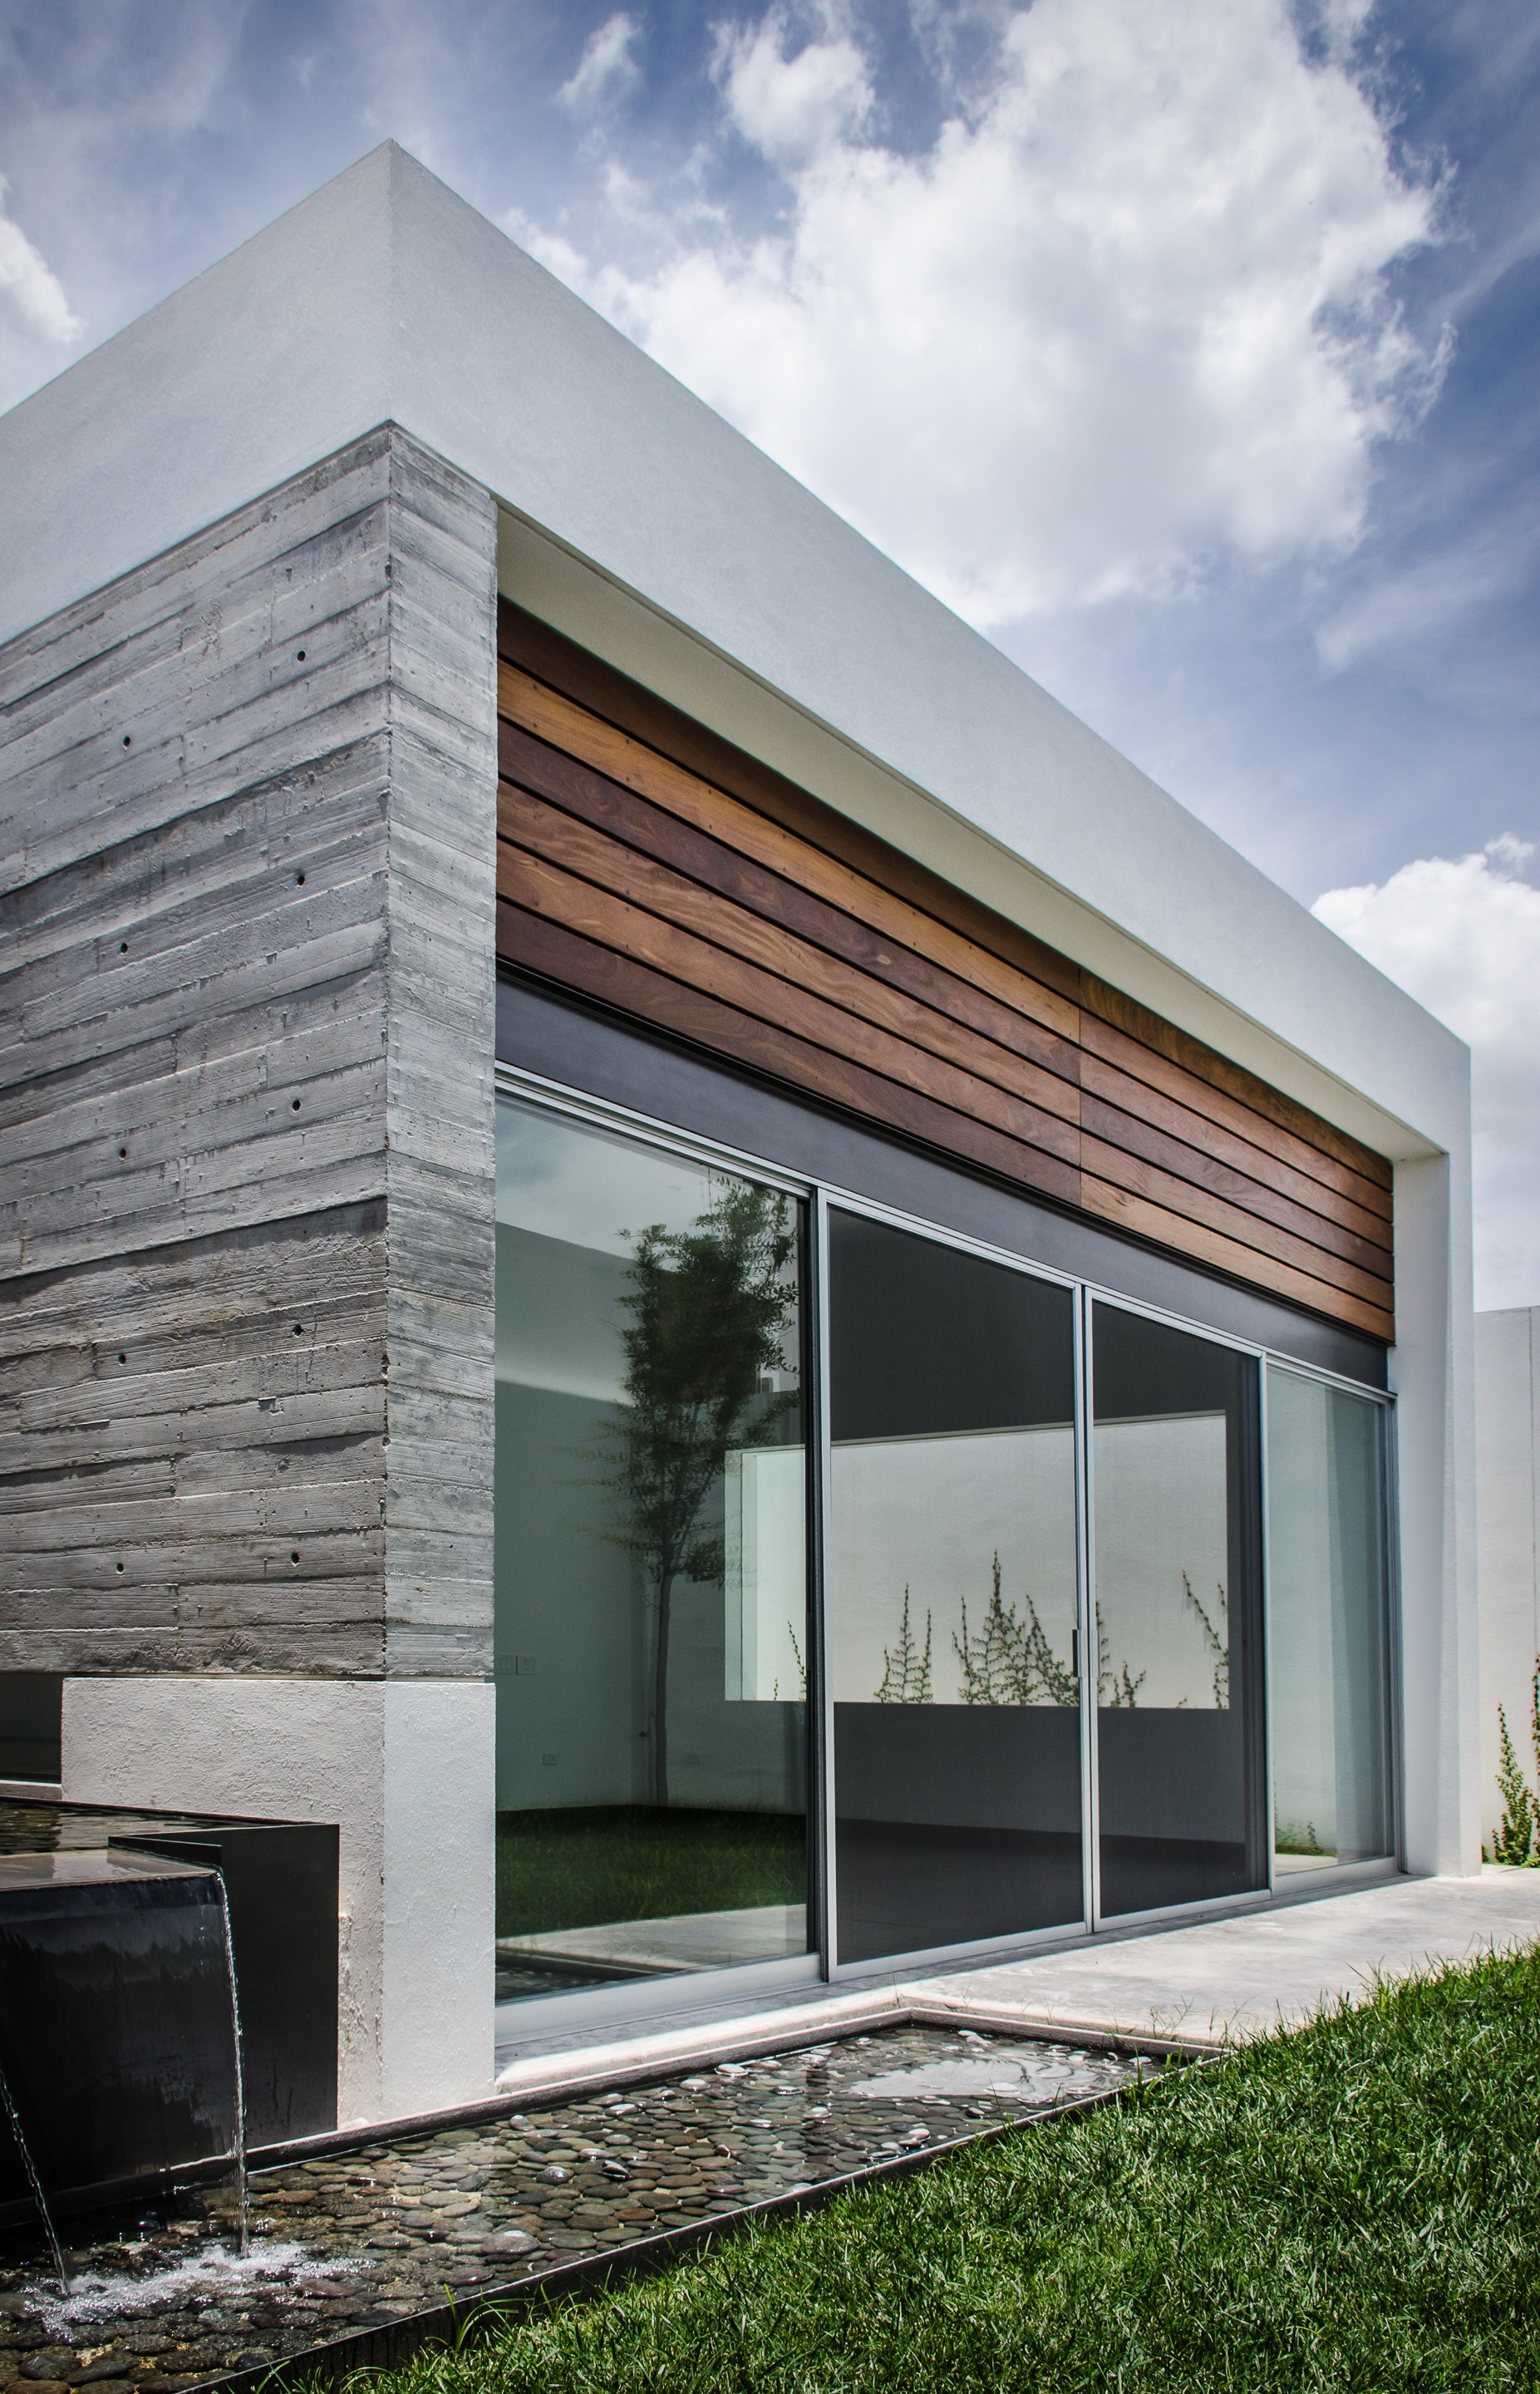 Gallery of t02 adi arquitectura y dise o interior 16 for Arquitectura y diseno interior